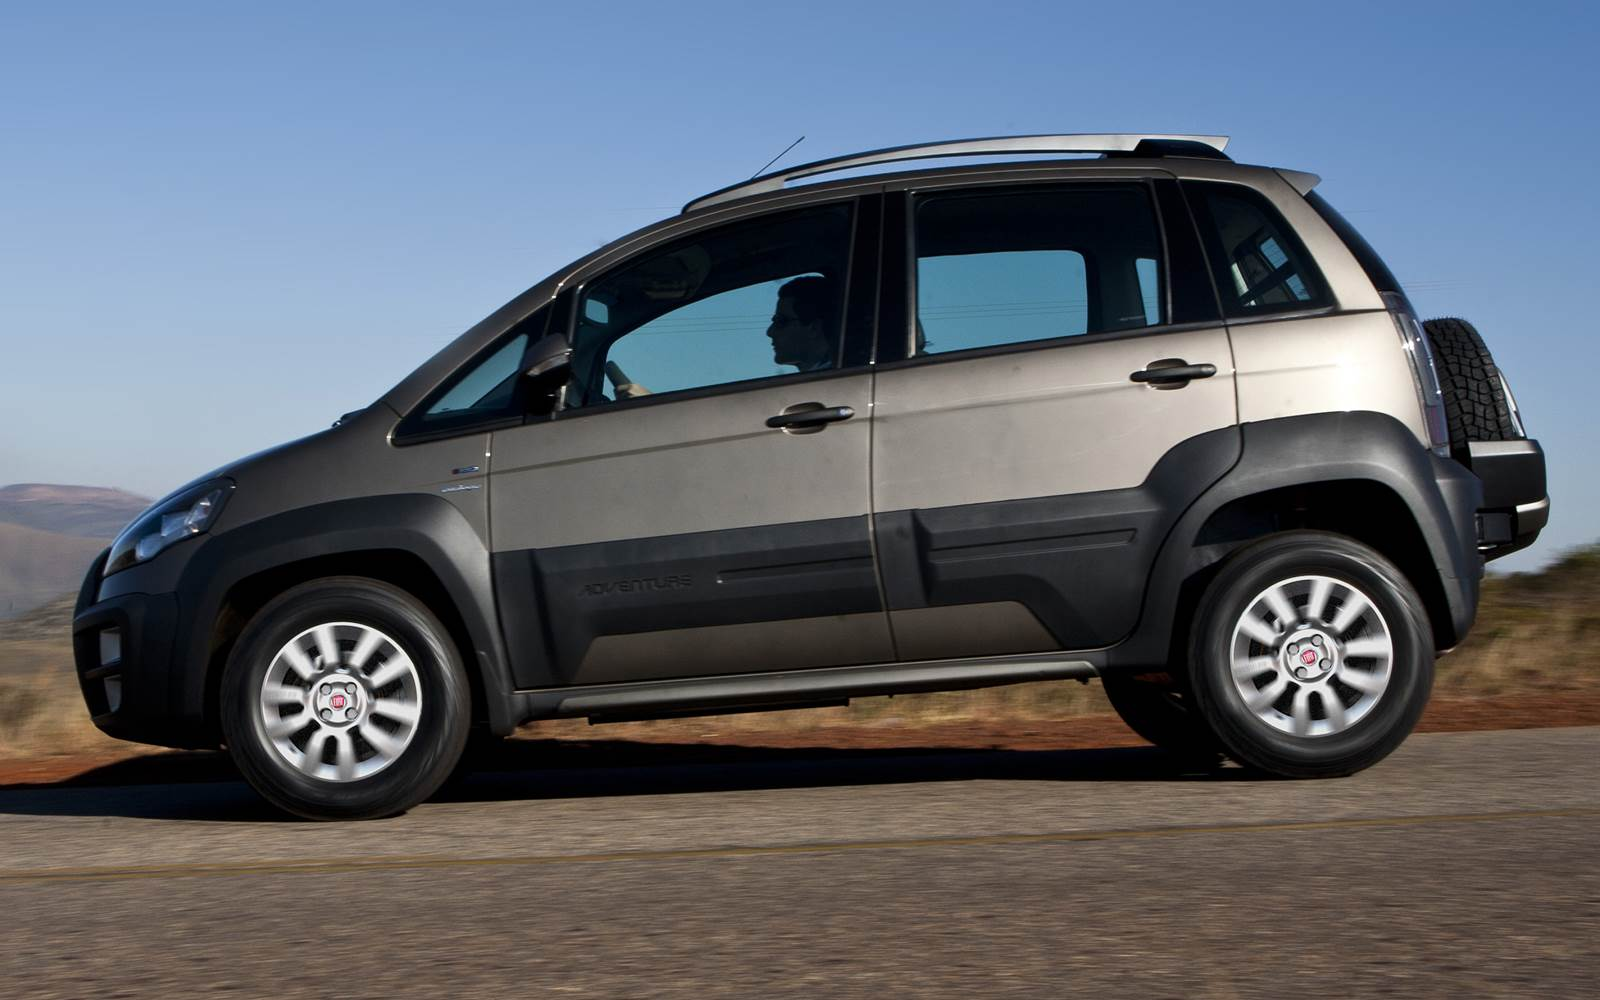 Fiat idea 2016 fotos pre os consumo e especifica es for Precio de fiat idea adventure 2015